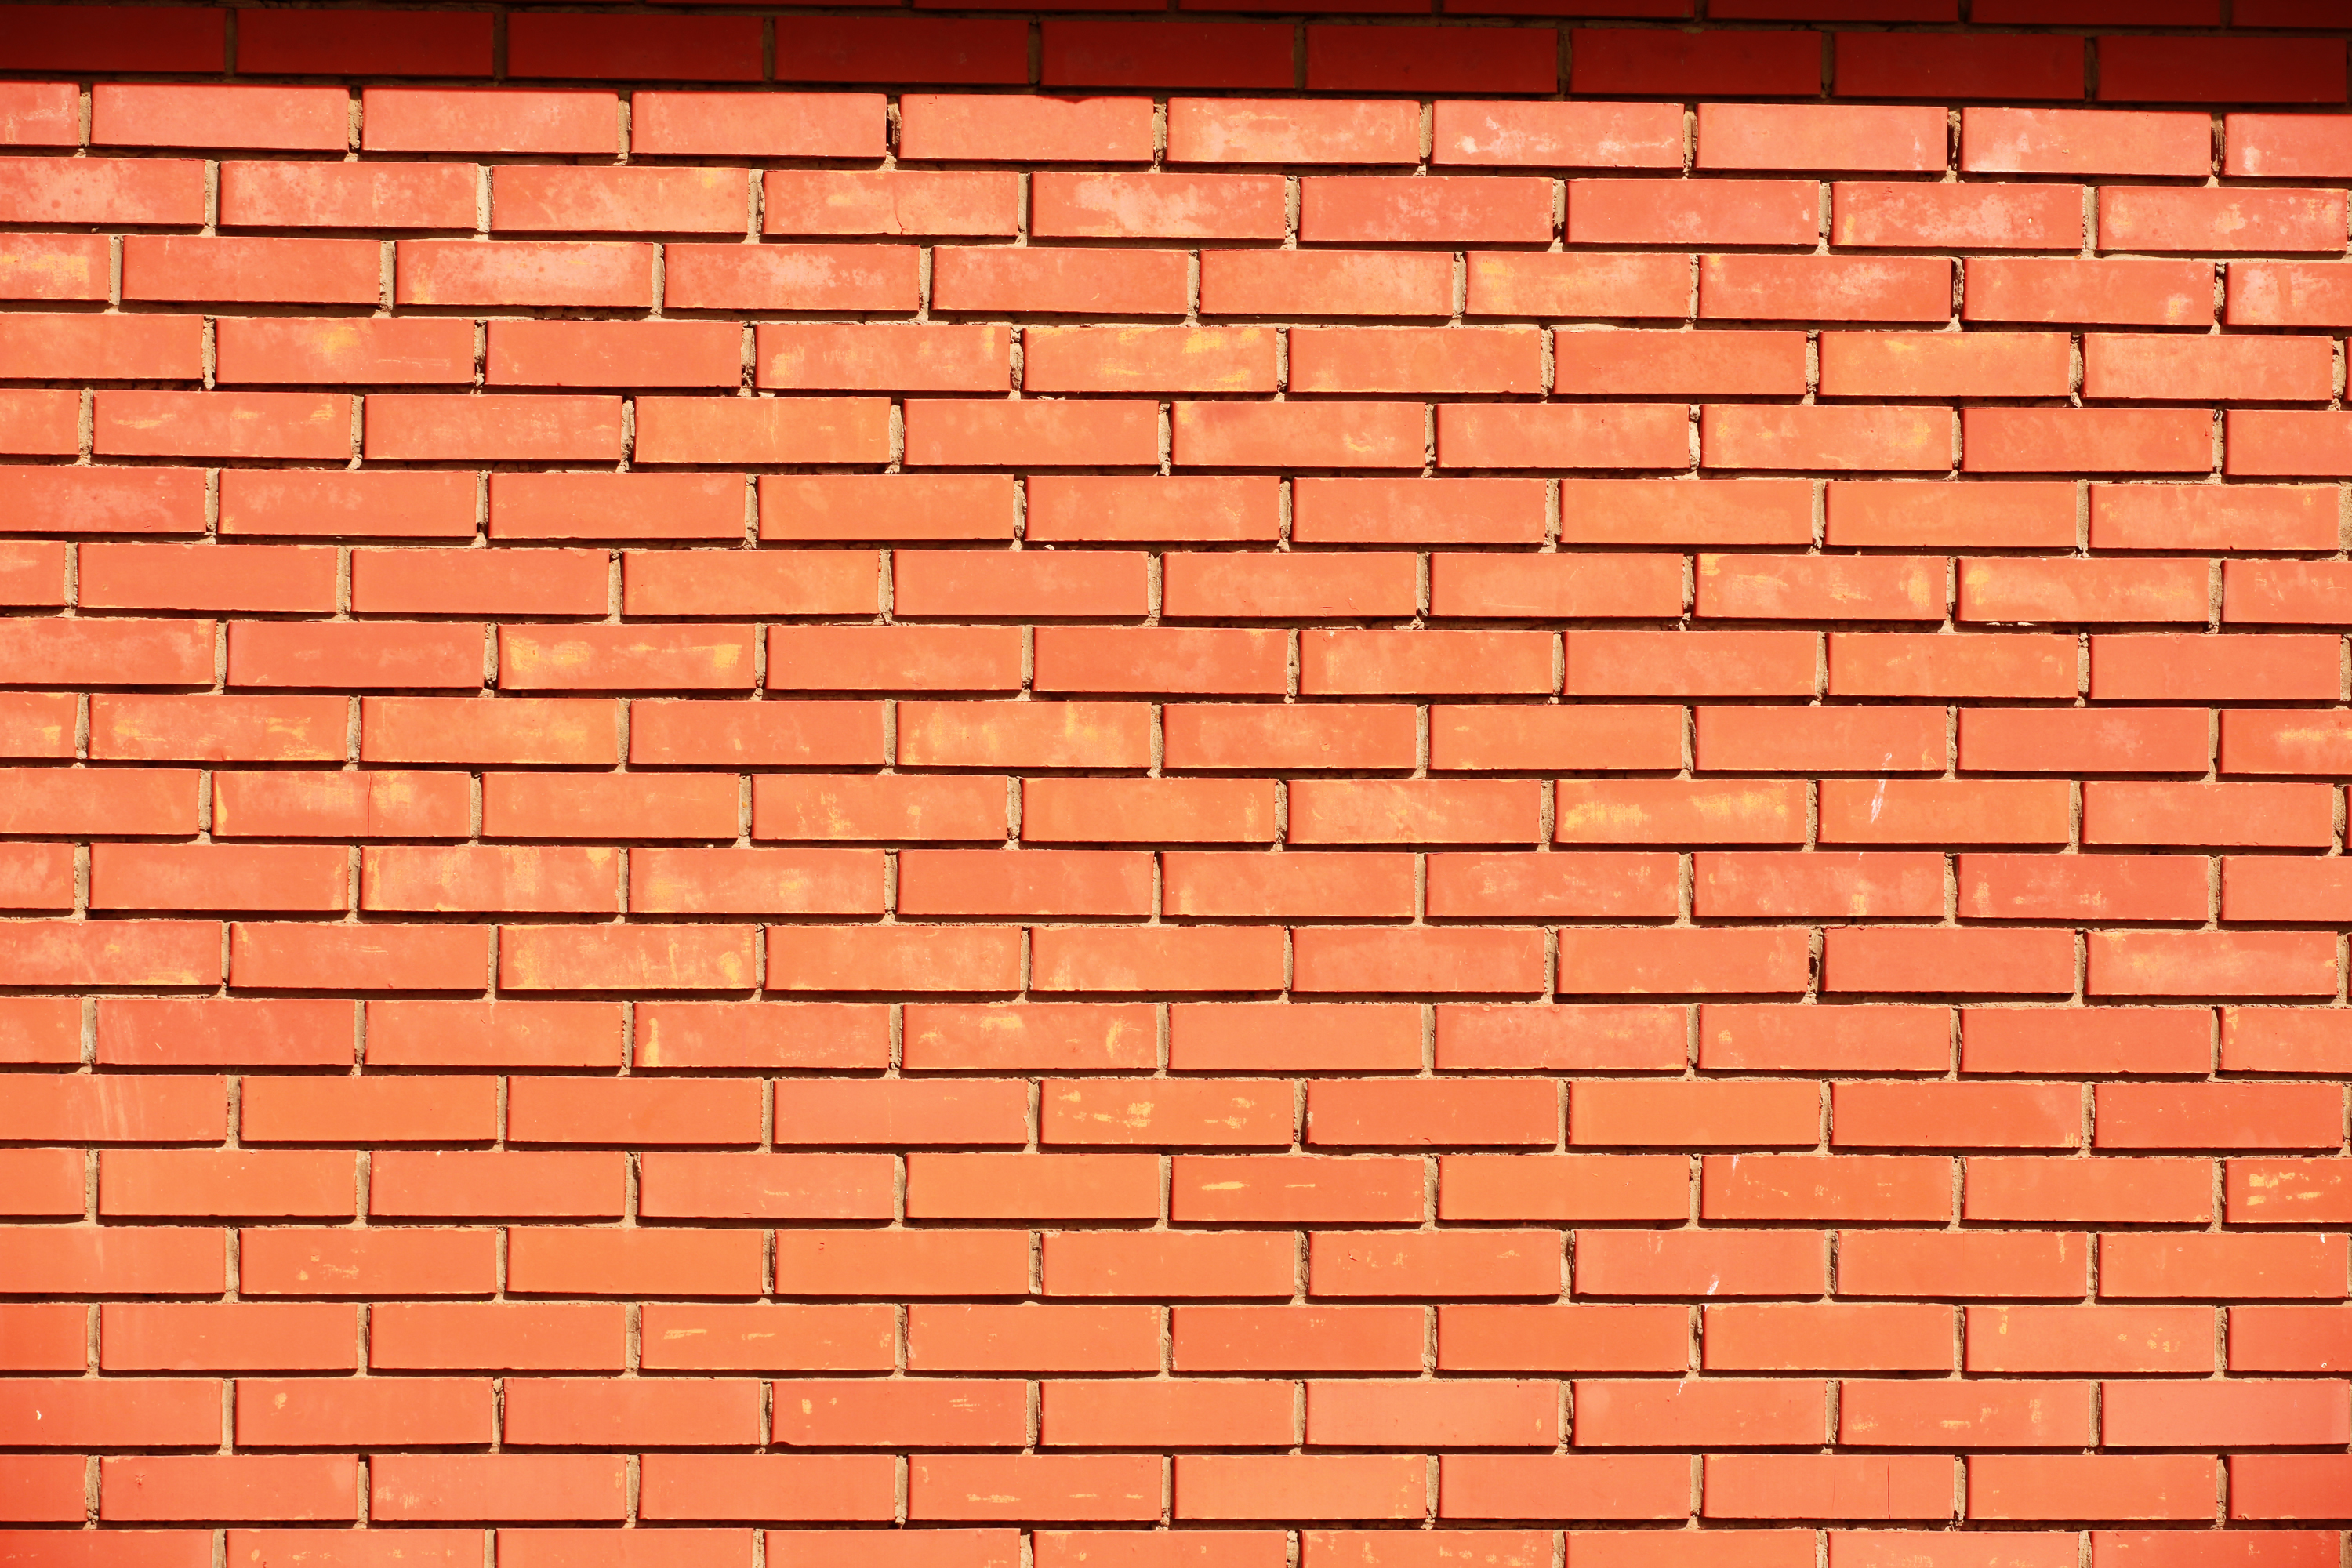 Brick wall, Aged, Pieces, Rectangle, Red, HQ Photo